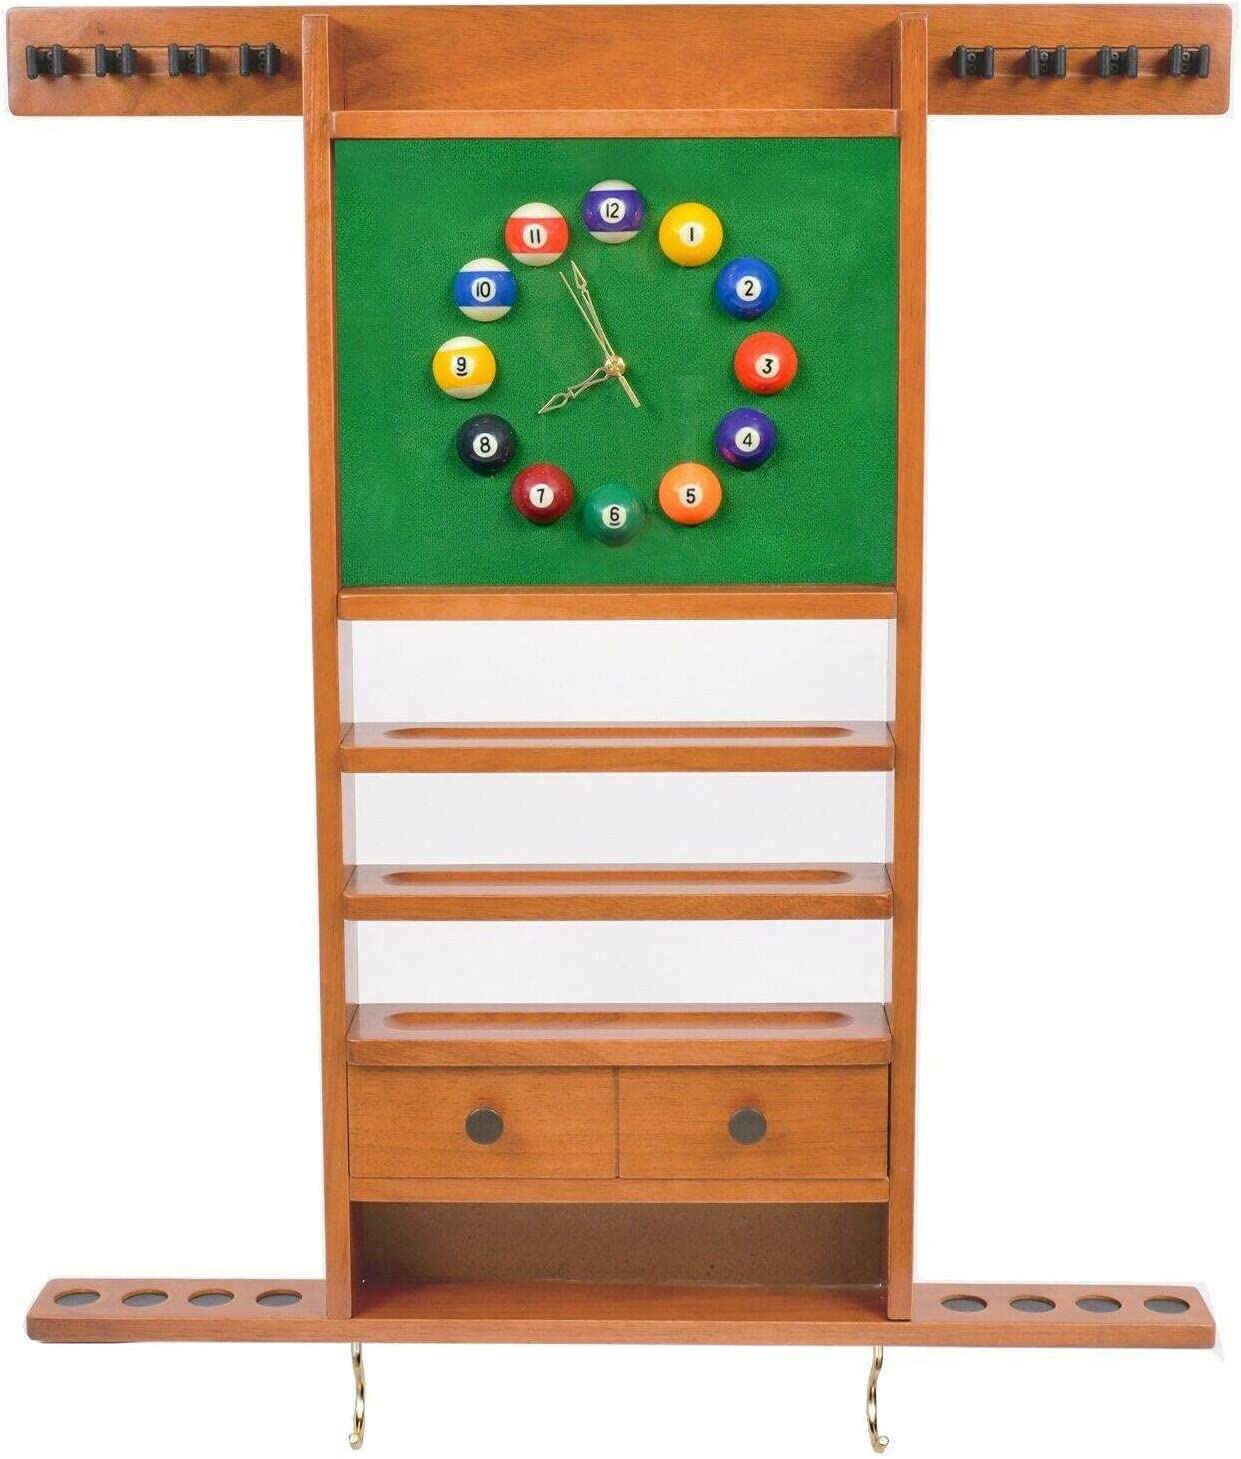 MRCH Cue Rack Only Popular brand - 8 Pool Outlet ☆ Free Shipping Holder Stick W Ball Billiard Clo